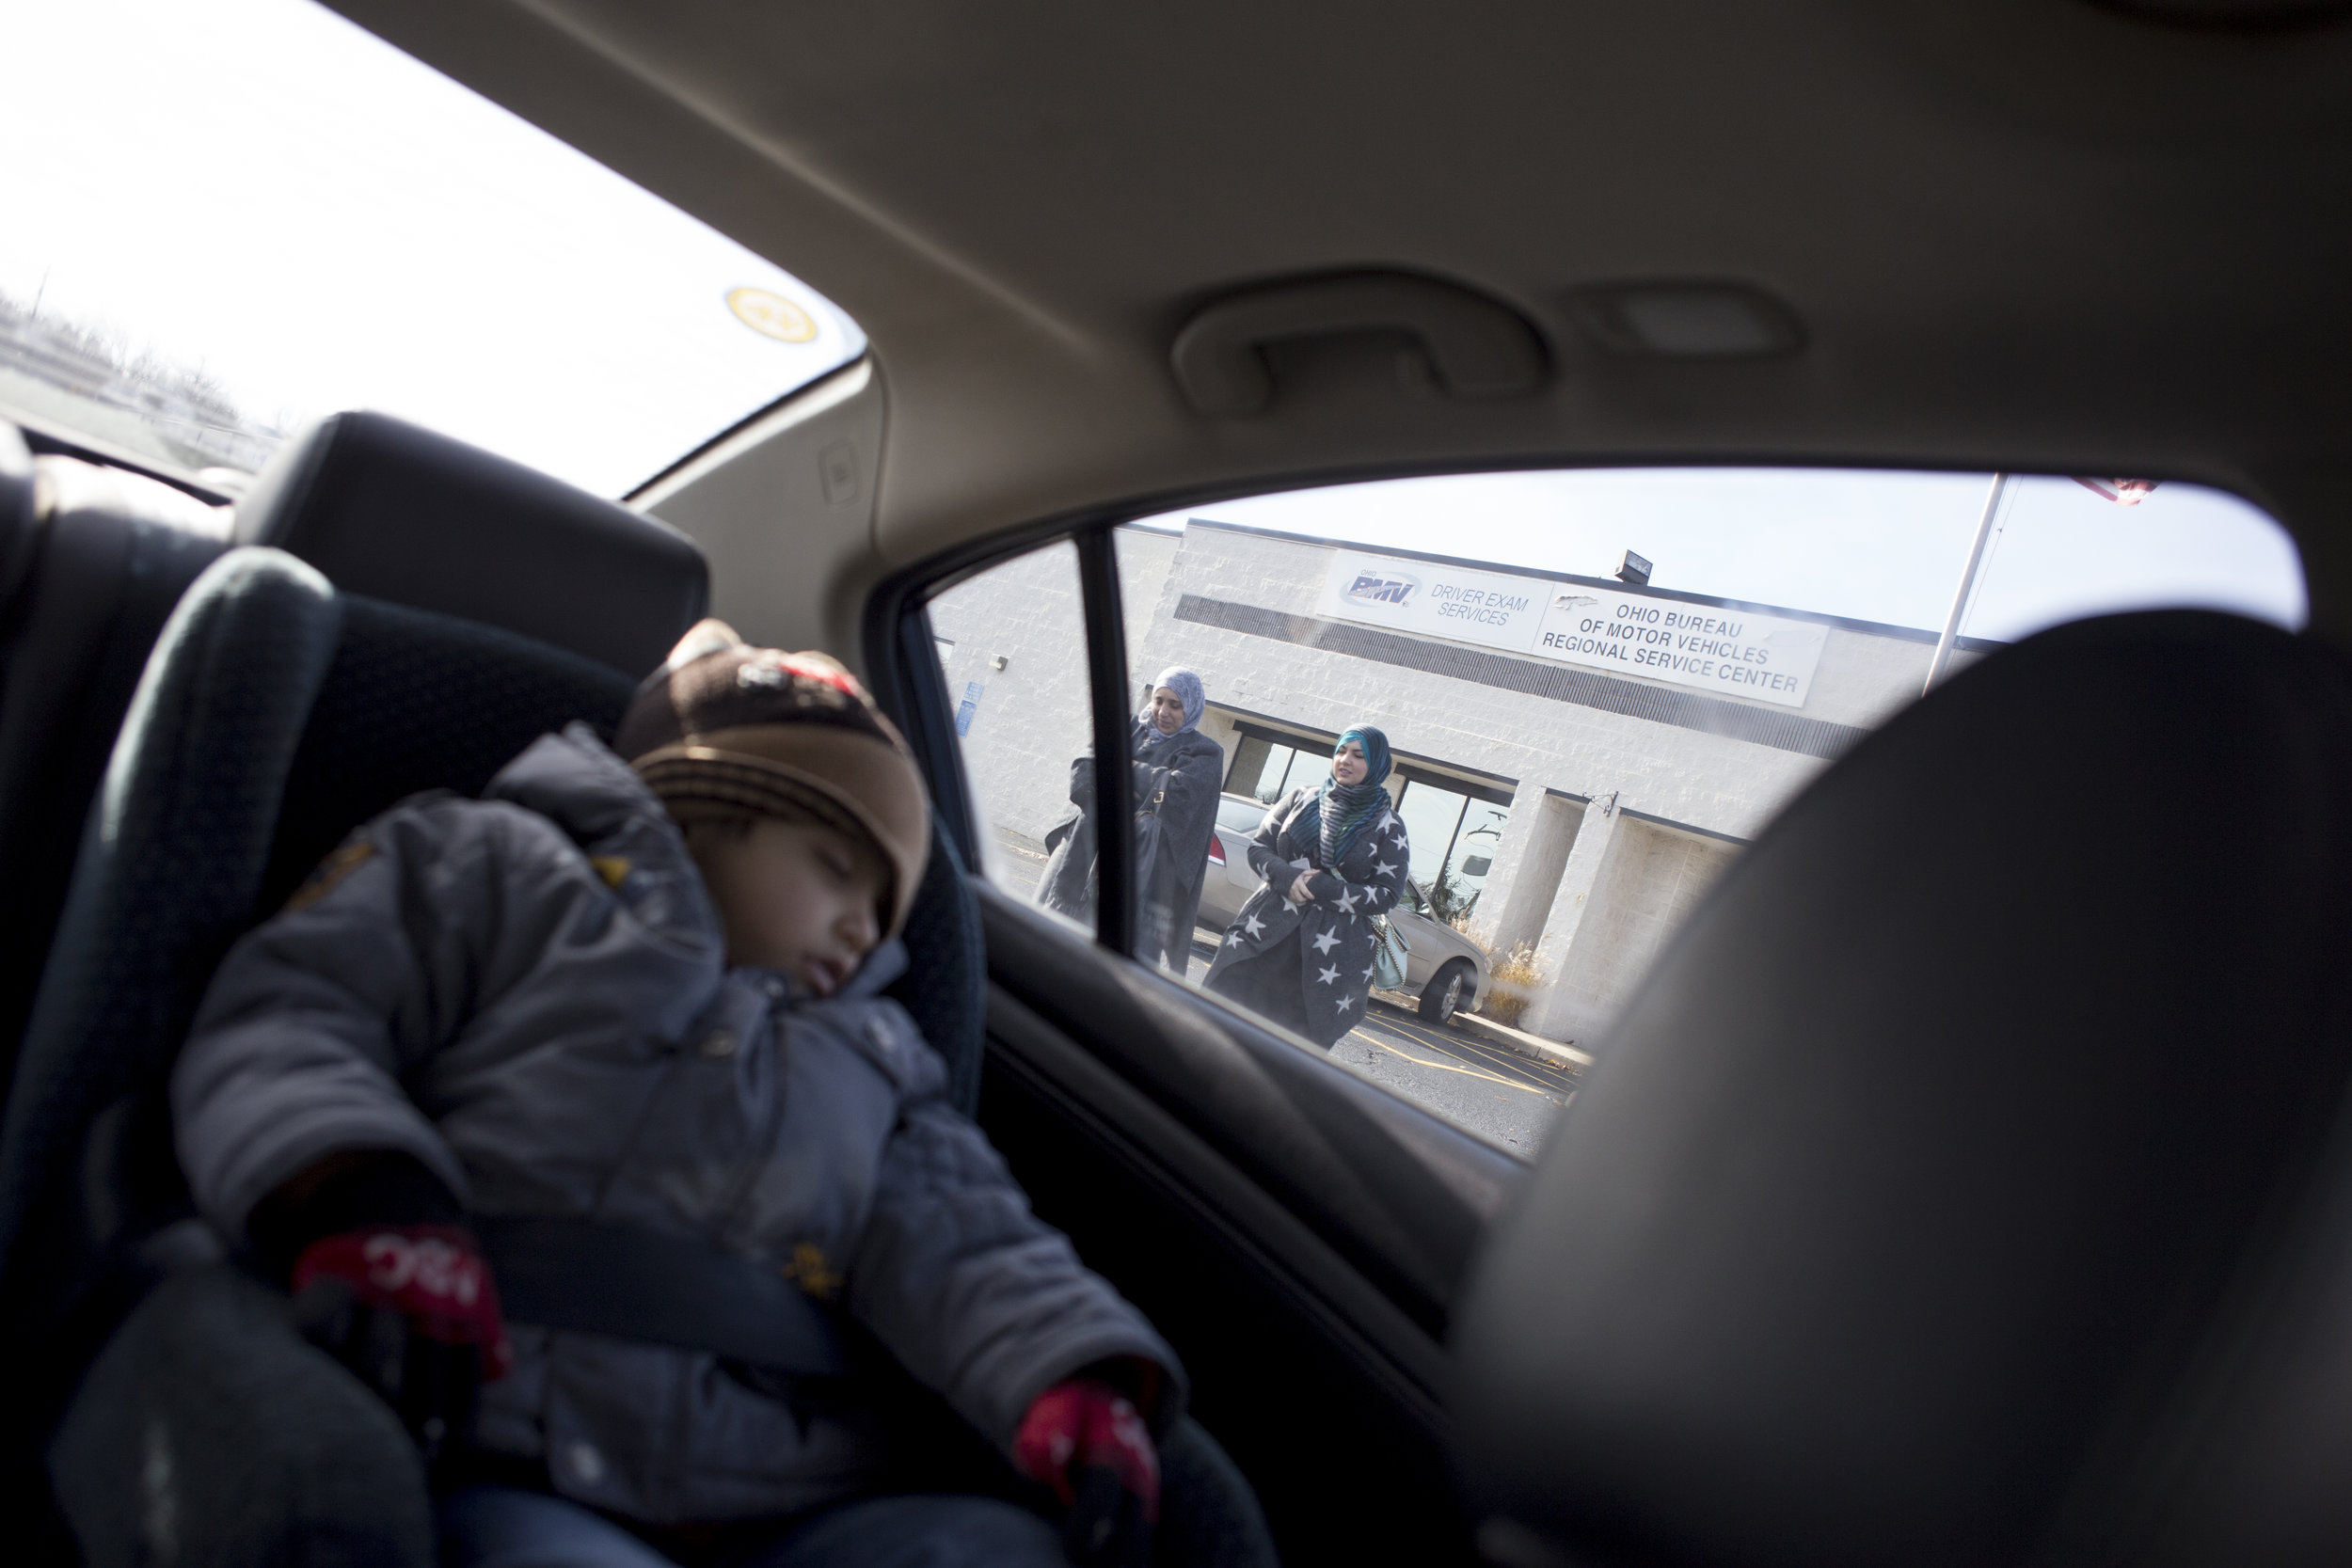 Two year-old Mohamad sleeps in the car as his mother Mariam and Runah, a volunteer for Salaam Cleveland, leave the Bureau of Motor Vehicles after Mariam received news that she failed her drivers permit exam on Wednesday, Dec. 7, 2016.